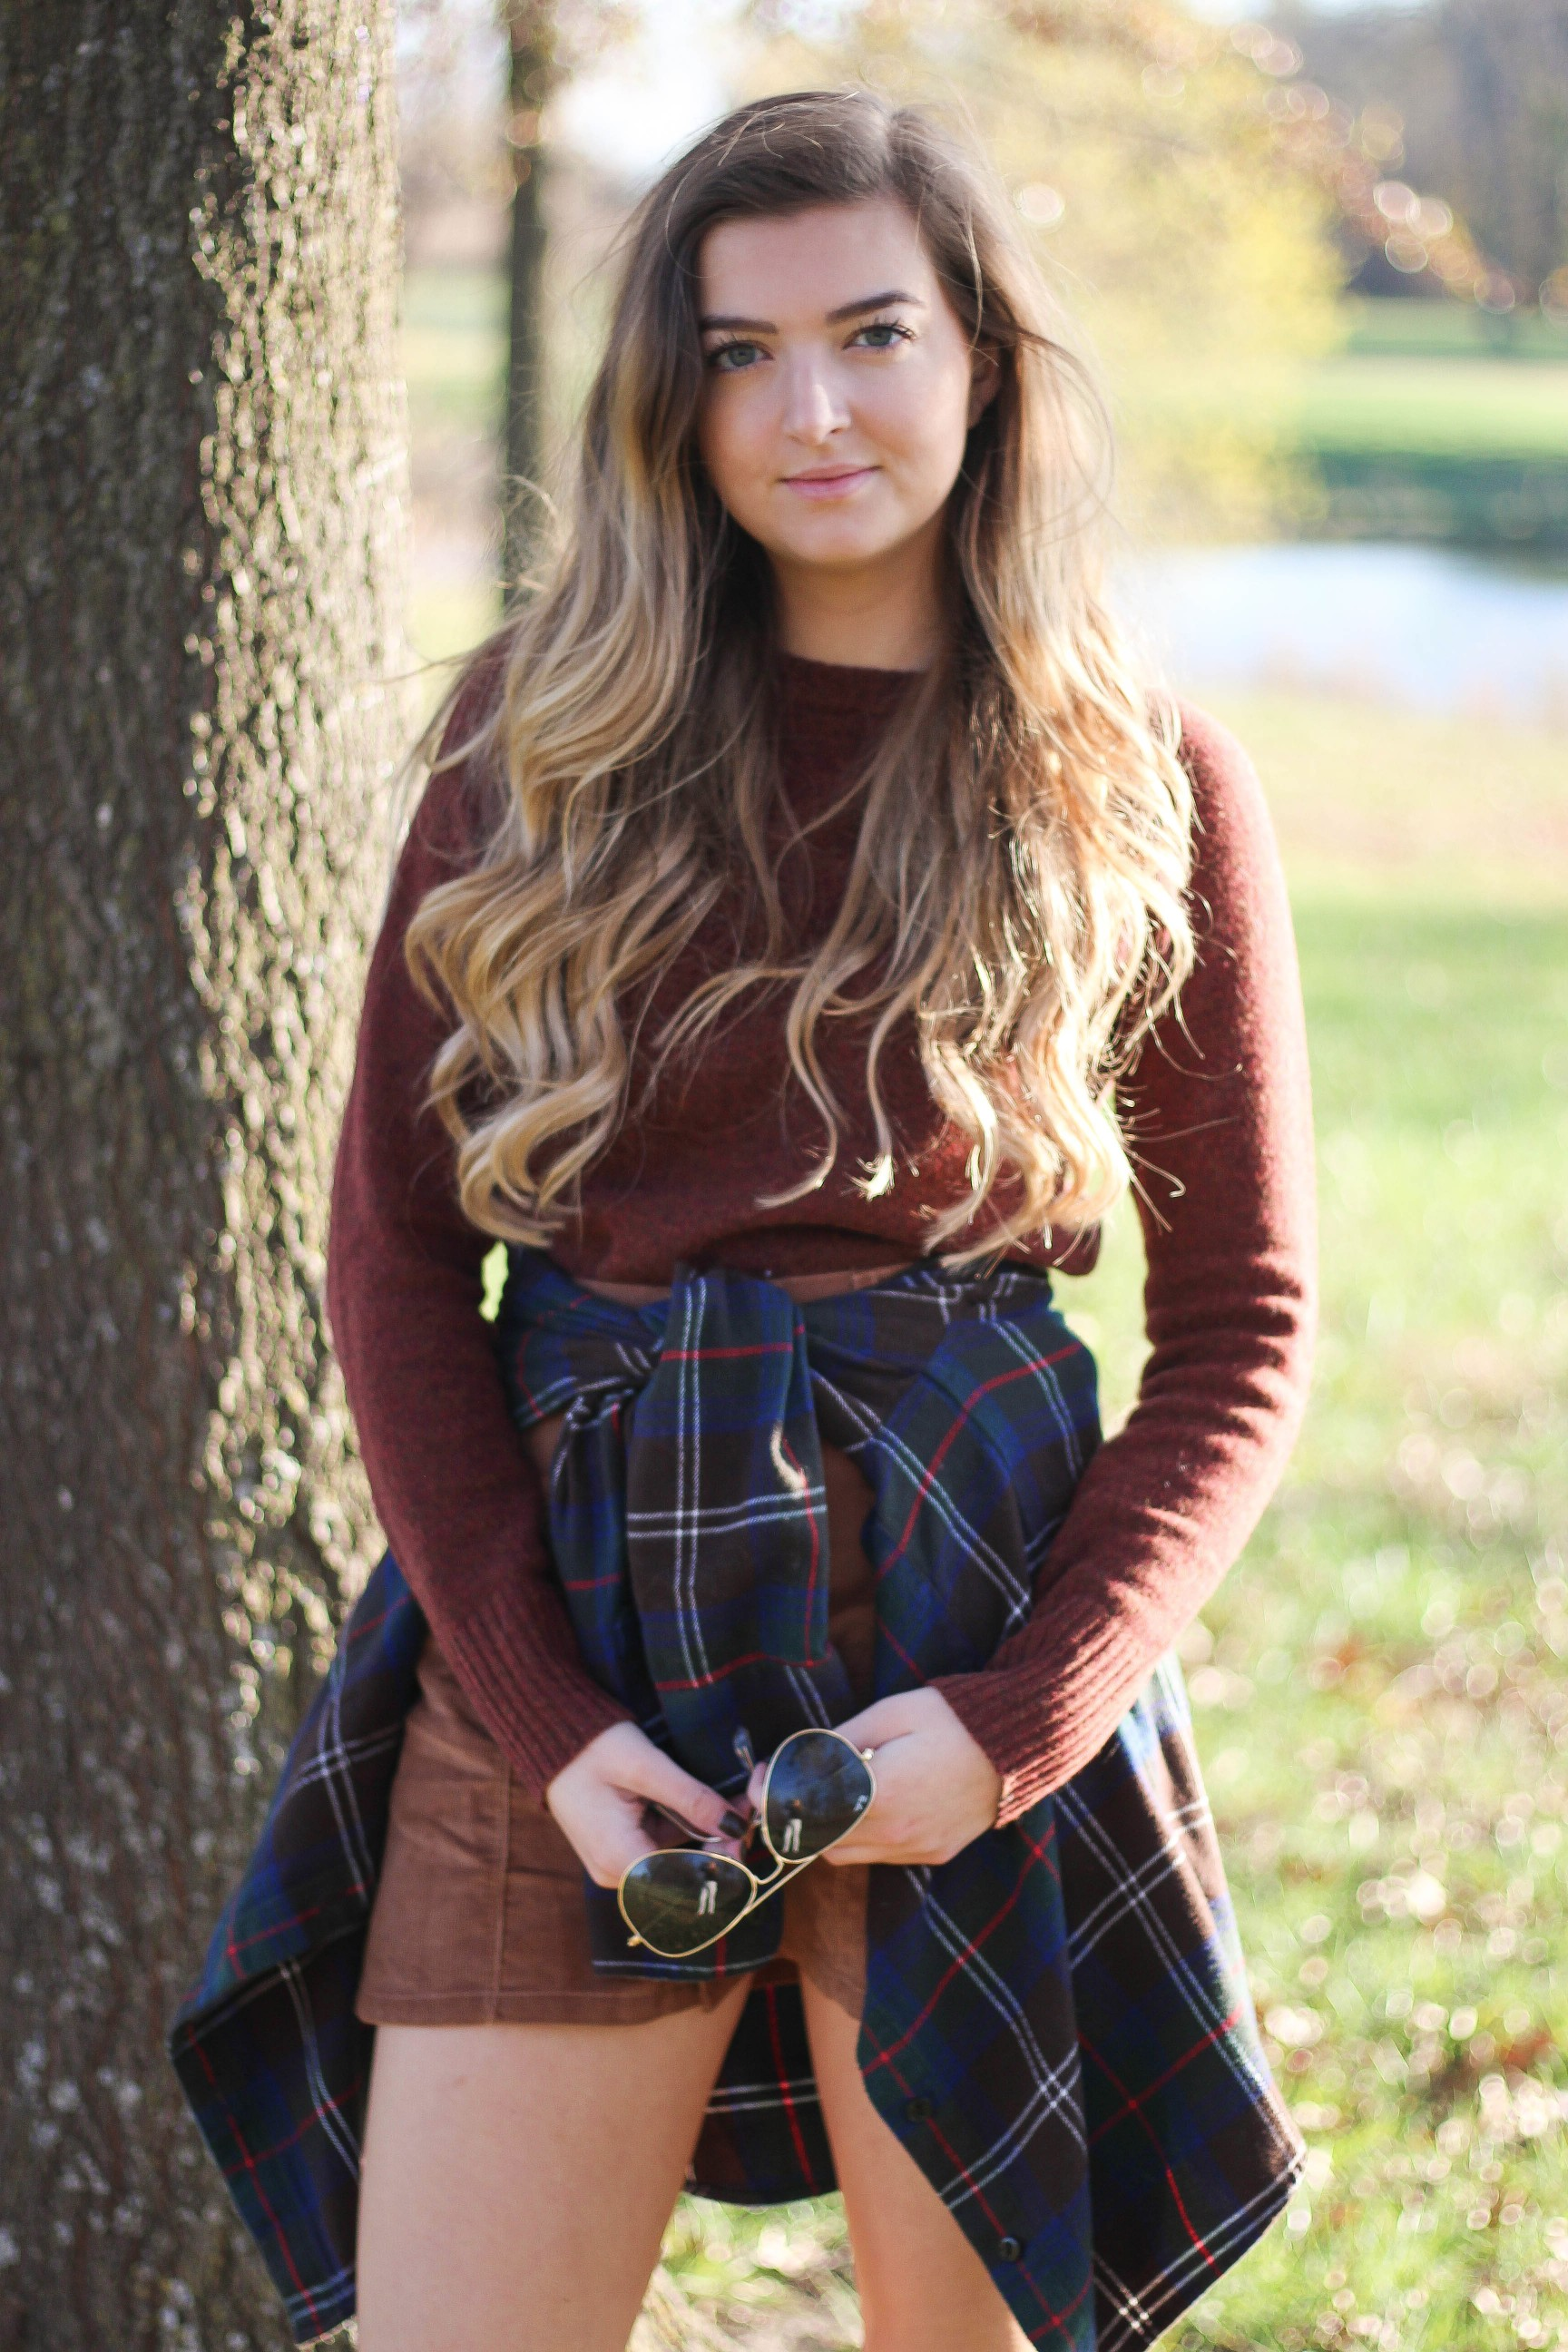 The perfect fall outfit! The corduroy skirt is showing up everywhere so I decided to pair it with a flannel to be a bit different. Of course I added a burgundy sweater because it's my favorite color for fall! As for my boyfriend, he's rocking a JORD wooden watch that I am in love with! Cute couple pictures are my favorite, check out our poses for engagement photo ideas and more! By Lauren Lindmark on Daily Dose of Charm dailydoseofcharm.com